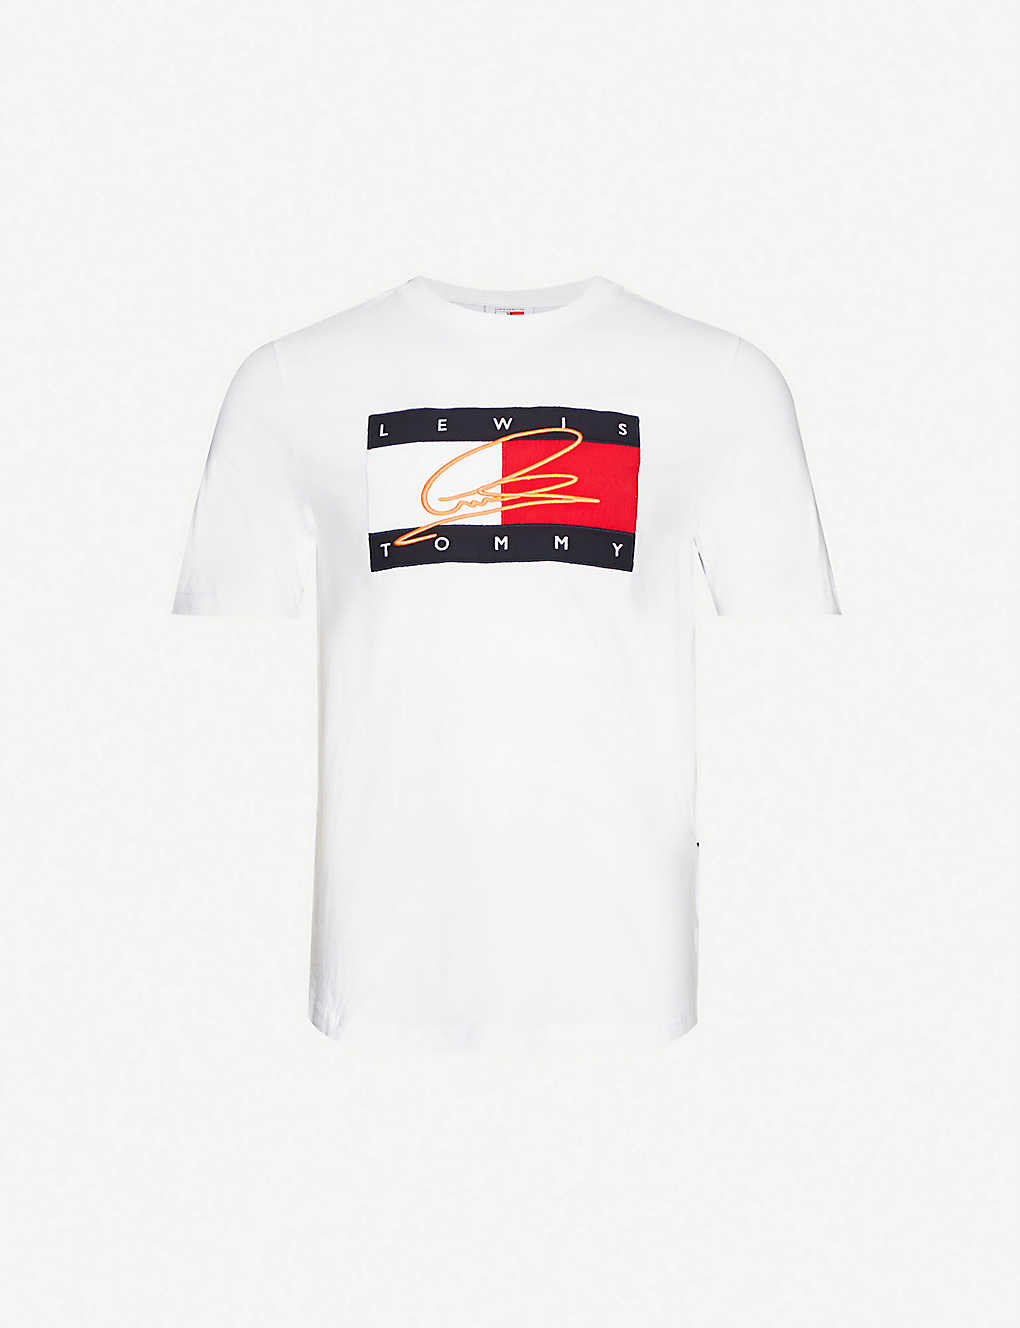 TOMMY HILFIGER: Tommy Hilfiger x Lewis Hamilton logo-embroidered cotton-jersey T-shirt